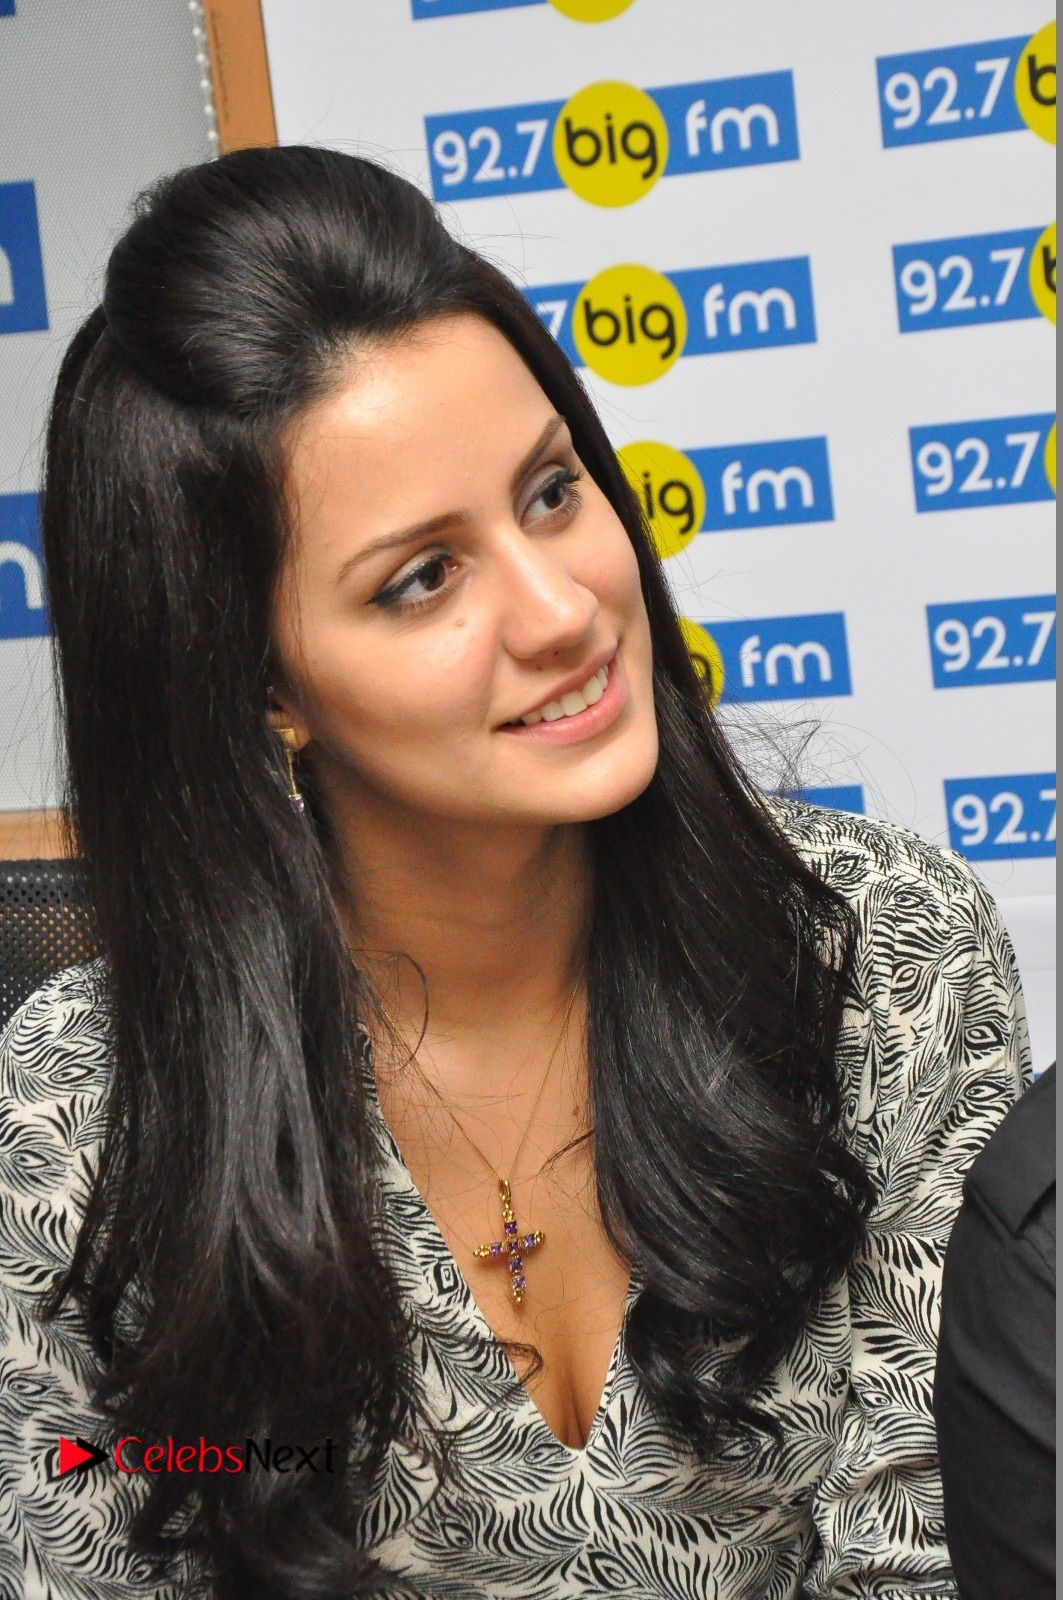 Larissa Bonesi Pictures in Jeans at Big FM For Thikka Movie Promotions ~ Celebs Next